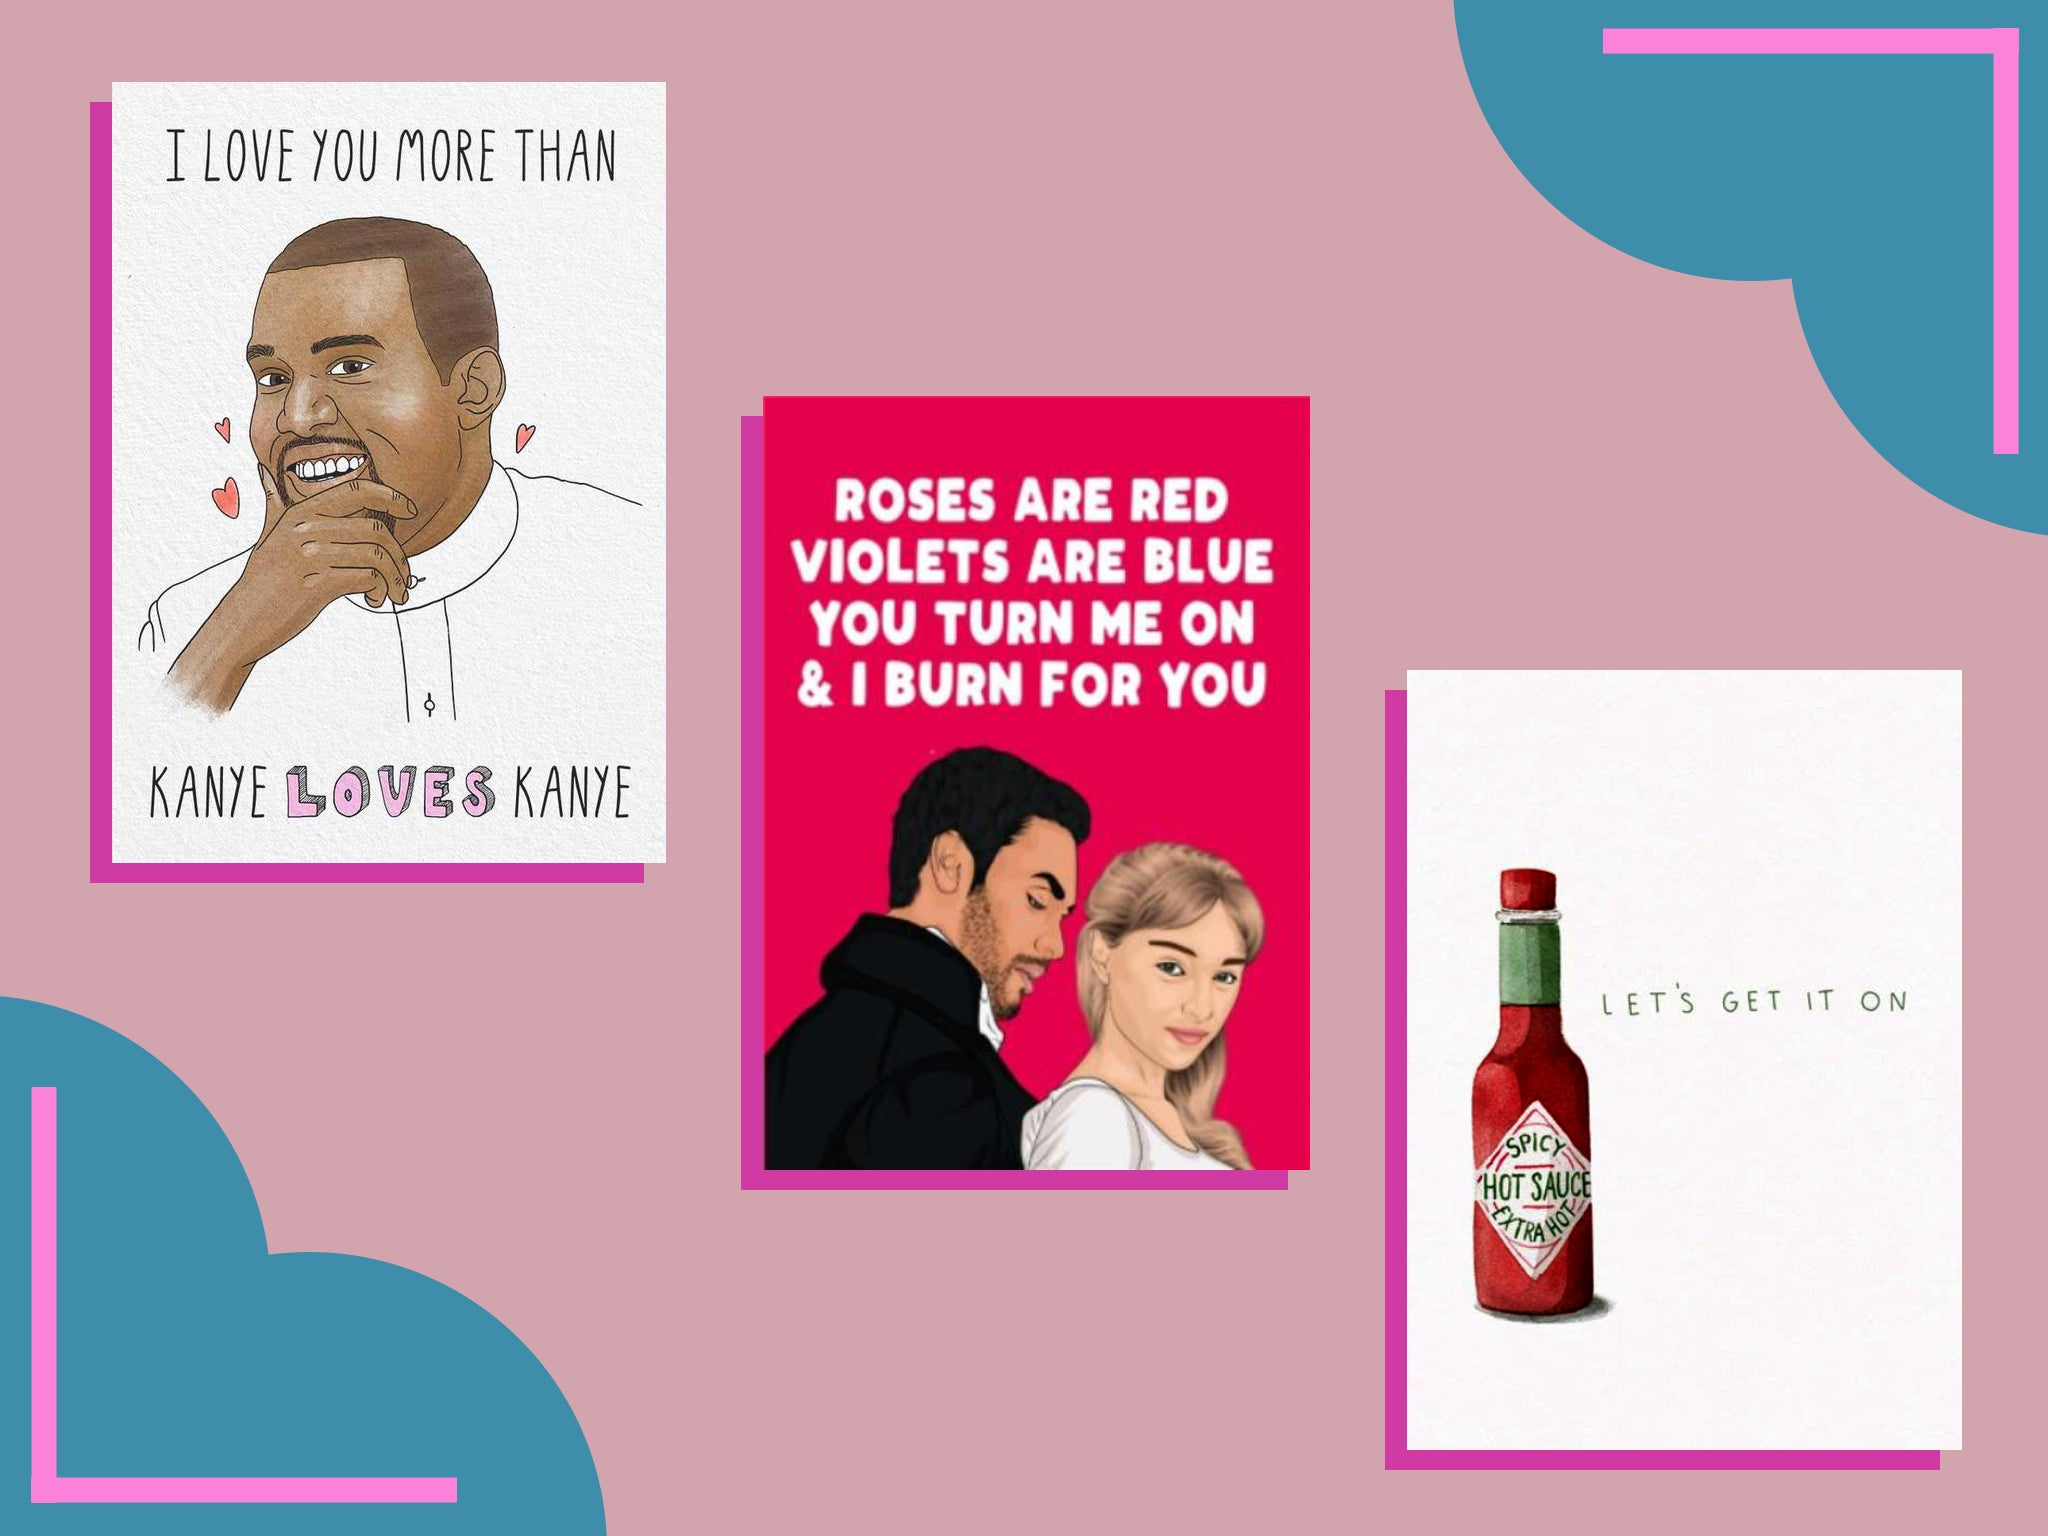 Funny Valentine's Day cards that will put anyone in a good mood